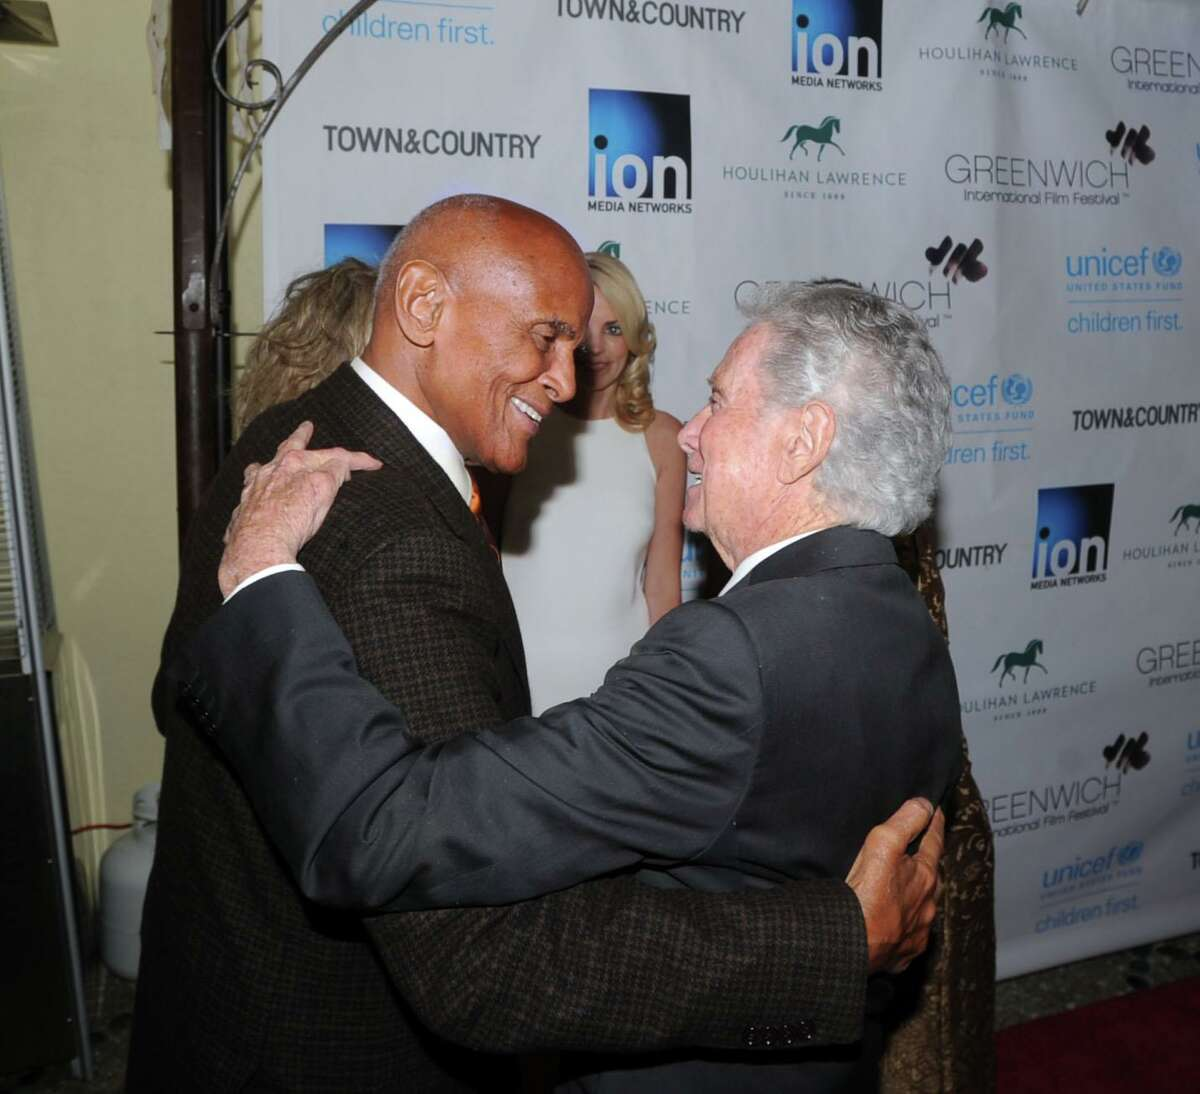 Regis Philbin, talk show host, greets honoree Harry Belafonte, left, during the Greenwich International Film Festival Gala honoring Belafonte for his philanthropic work with UNICEF at L'escale Restaurant & Bar in Greenwich, Conn., Saturday night, June 6, 2015.